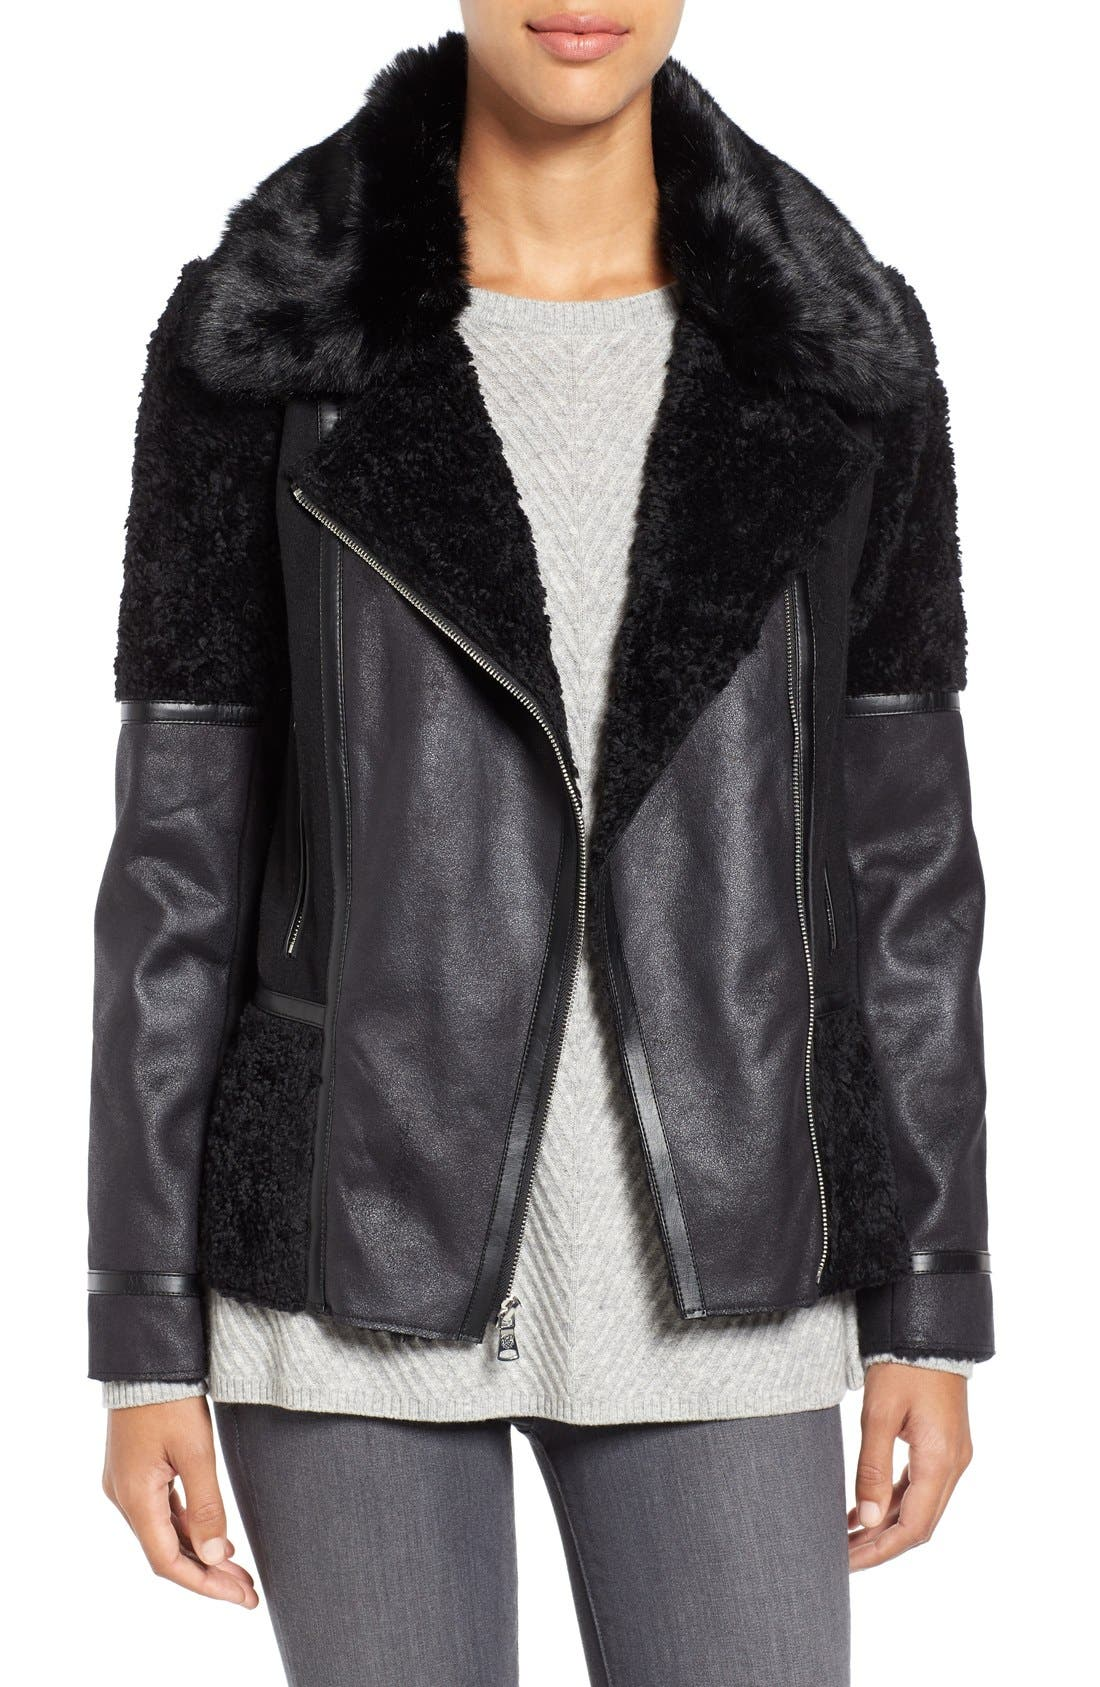 Alternate Image 1 Selected - Vince Camuto Mixed Media Faux Shearling Moto Jacket